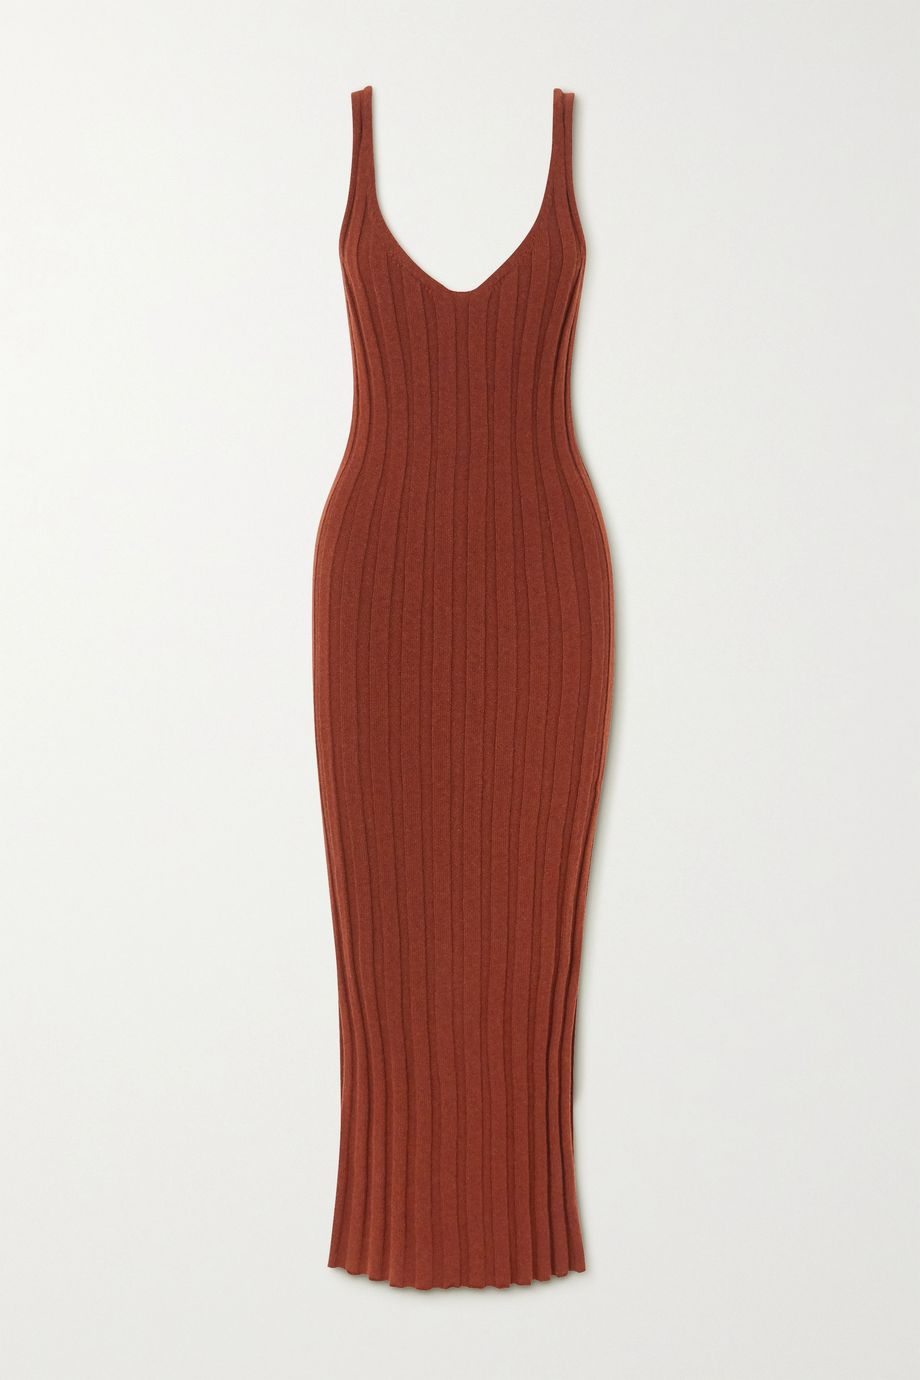 Khaite Louis ribbed cashmere dress